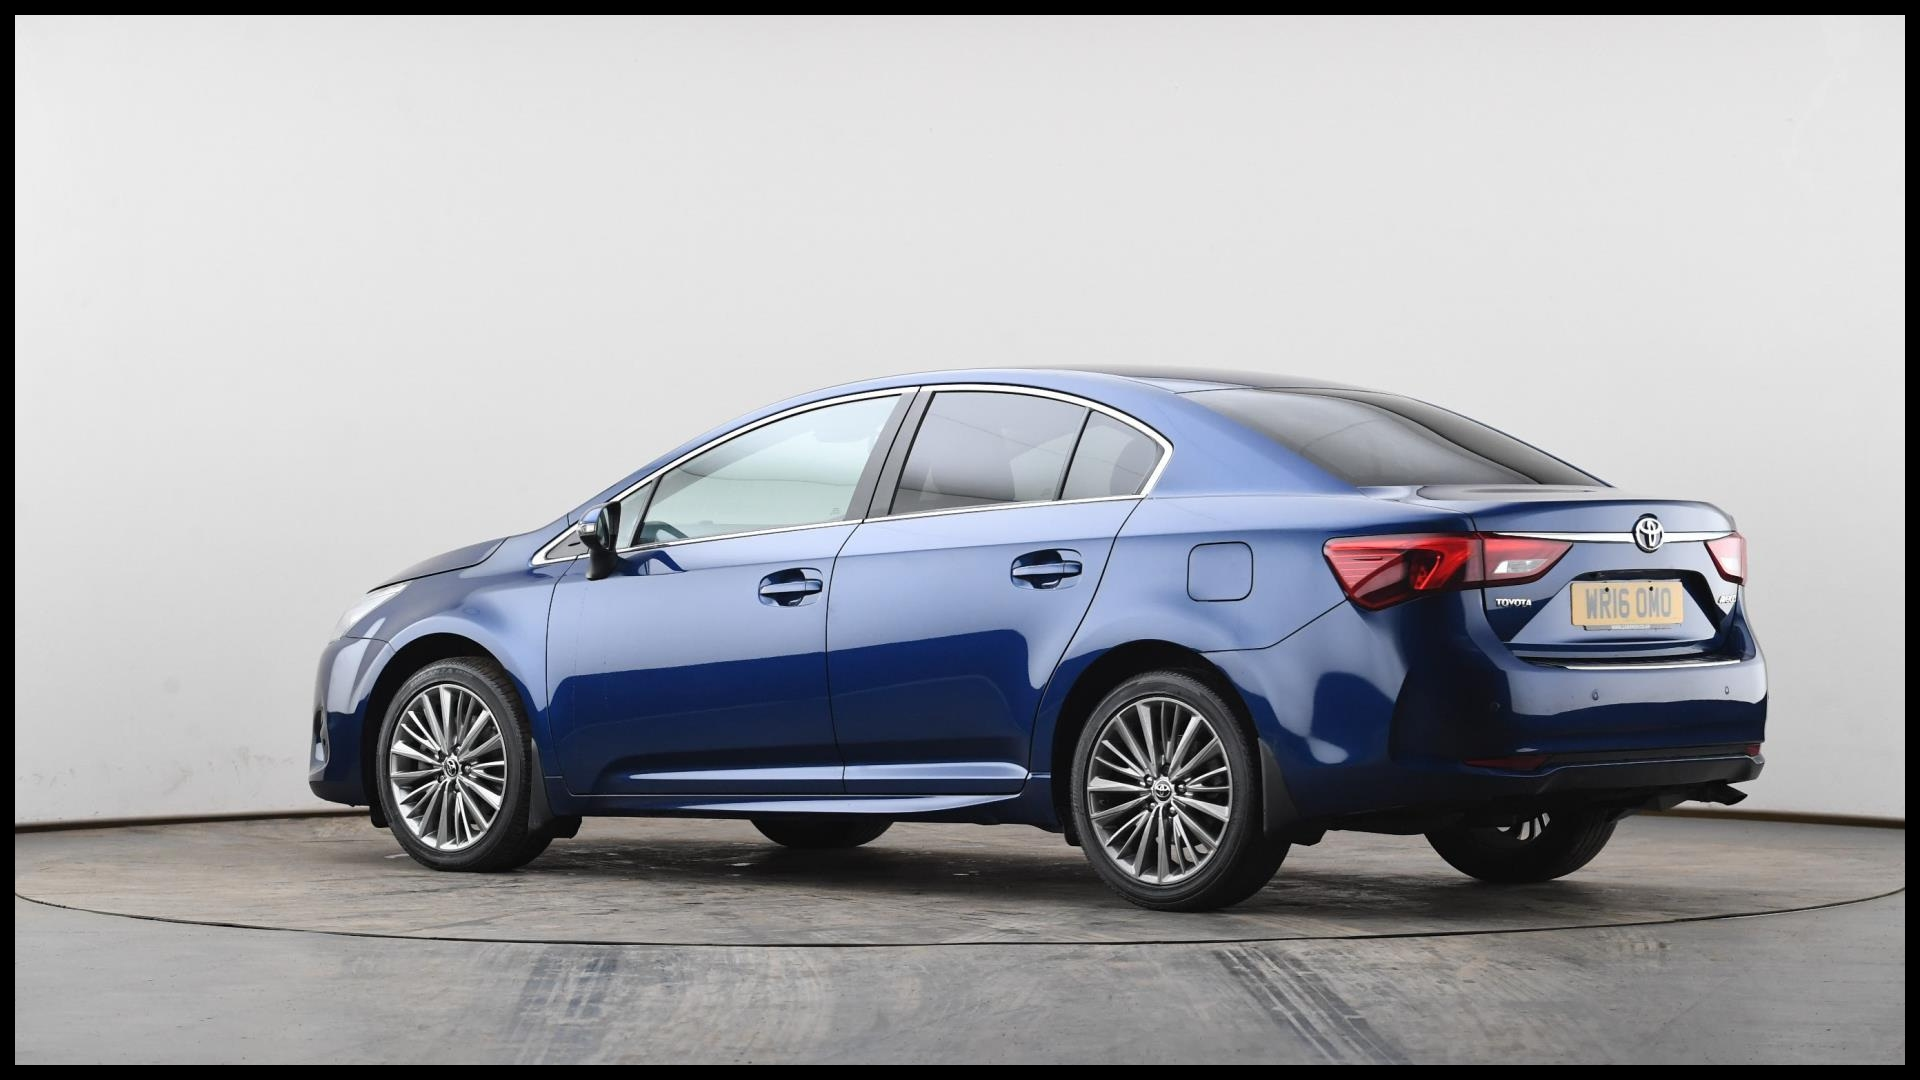 Buy toyota Camry Used Used toyota Avensis 2 0d Excel 4dr Blue Wr16omo Price All New